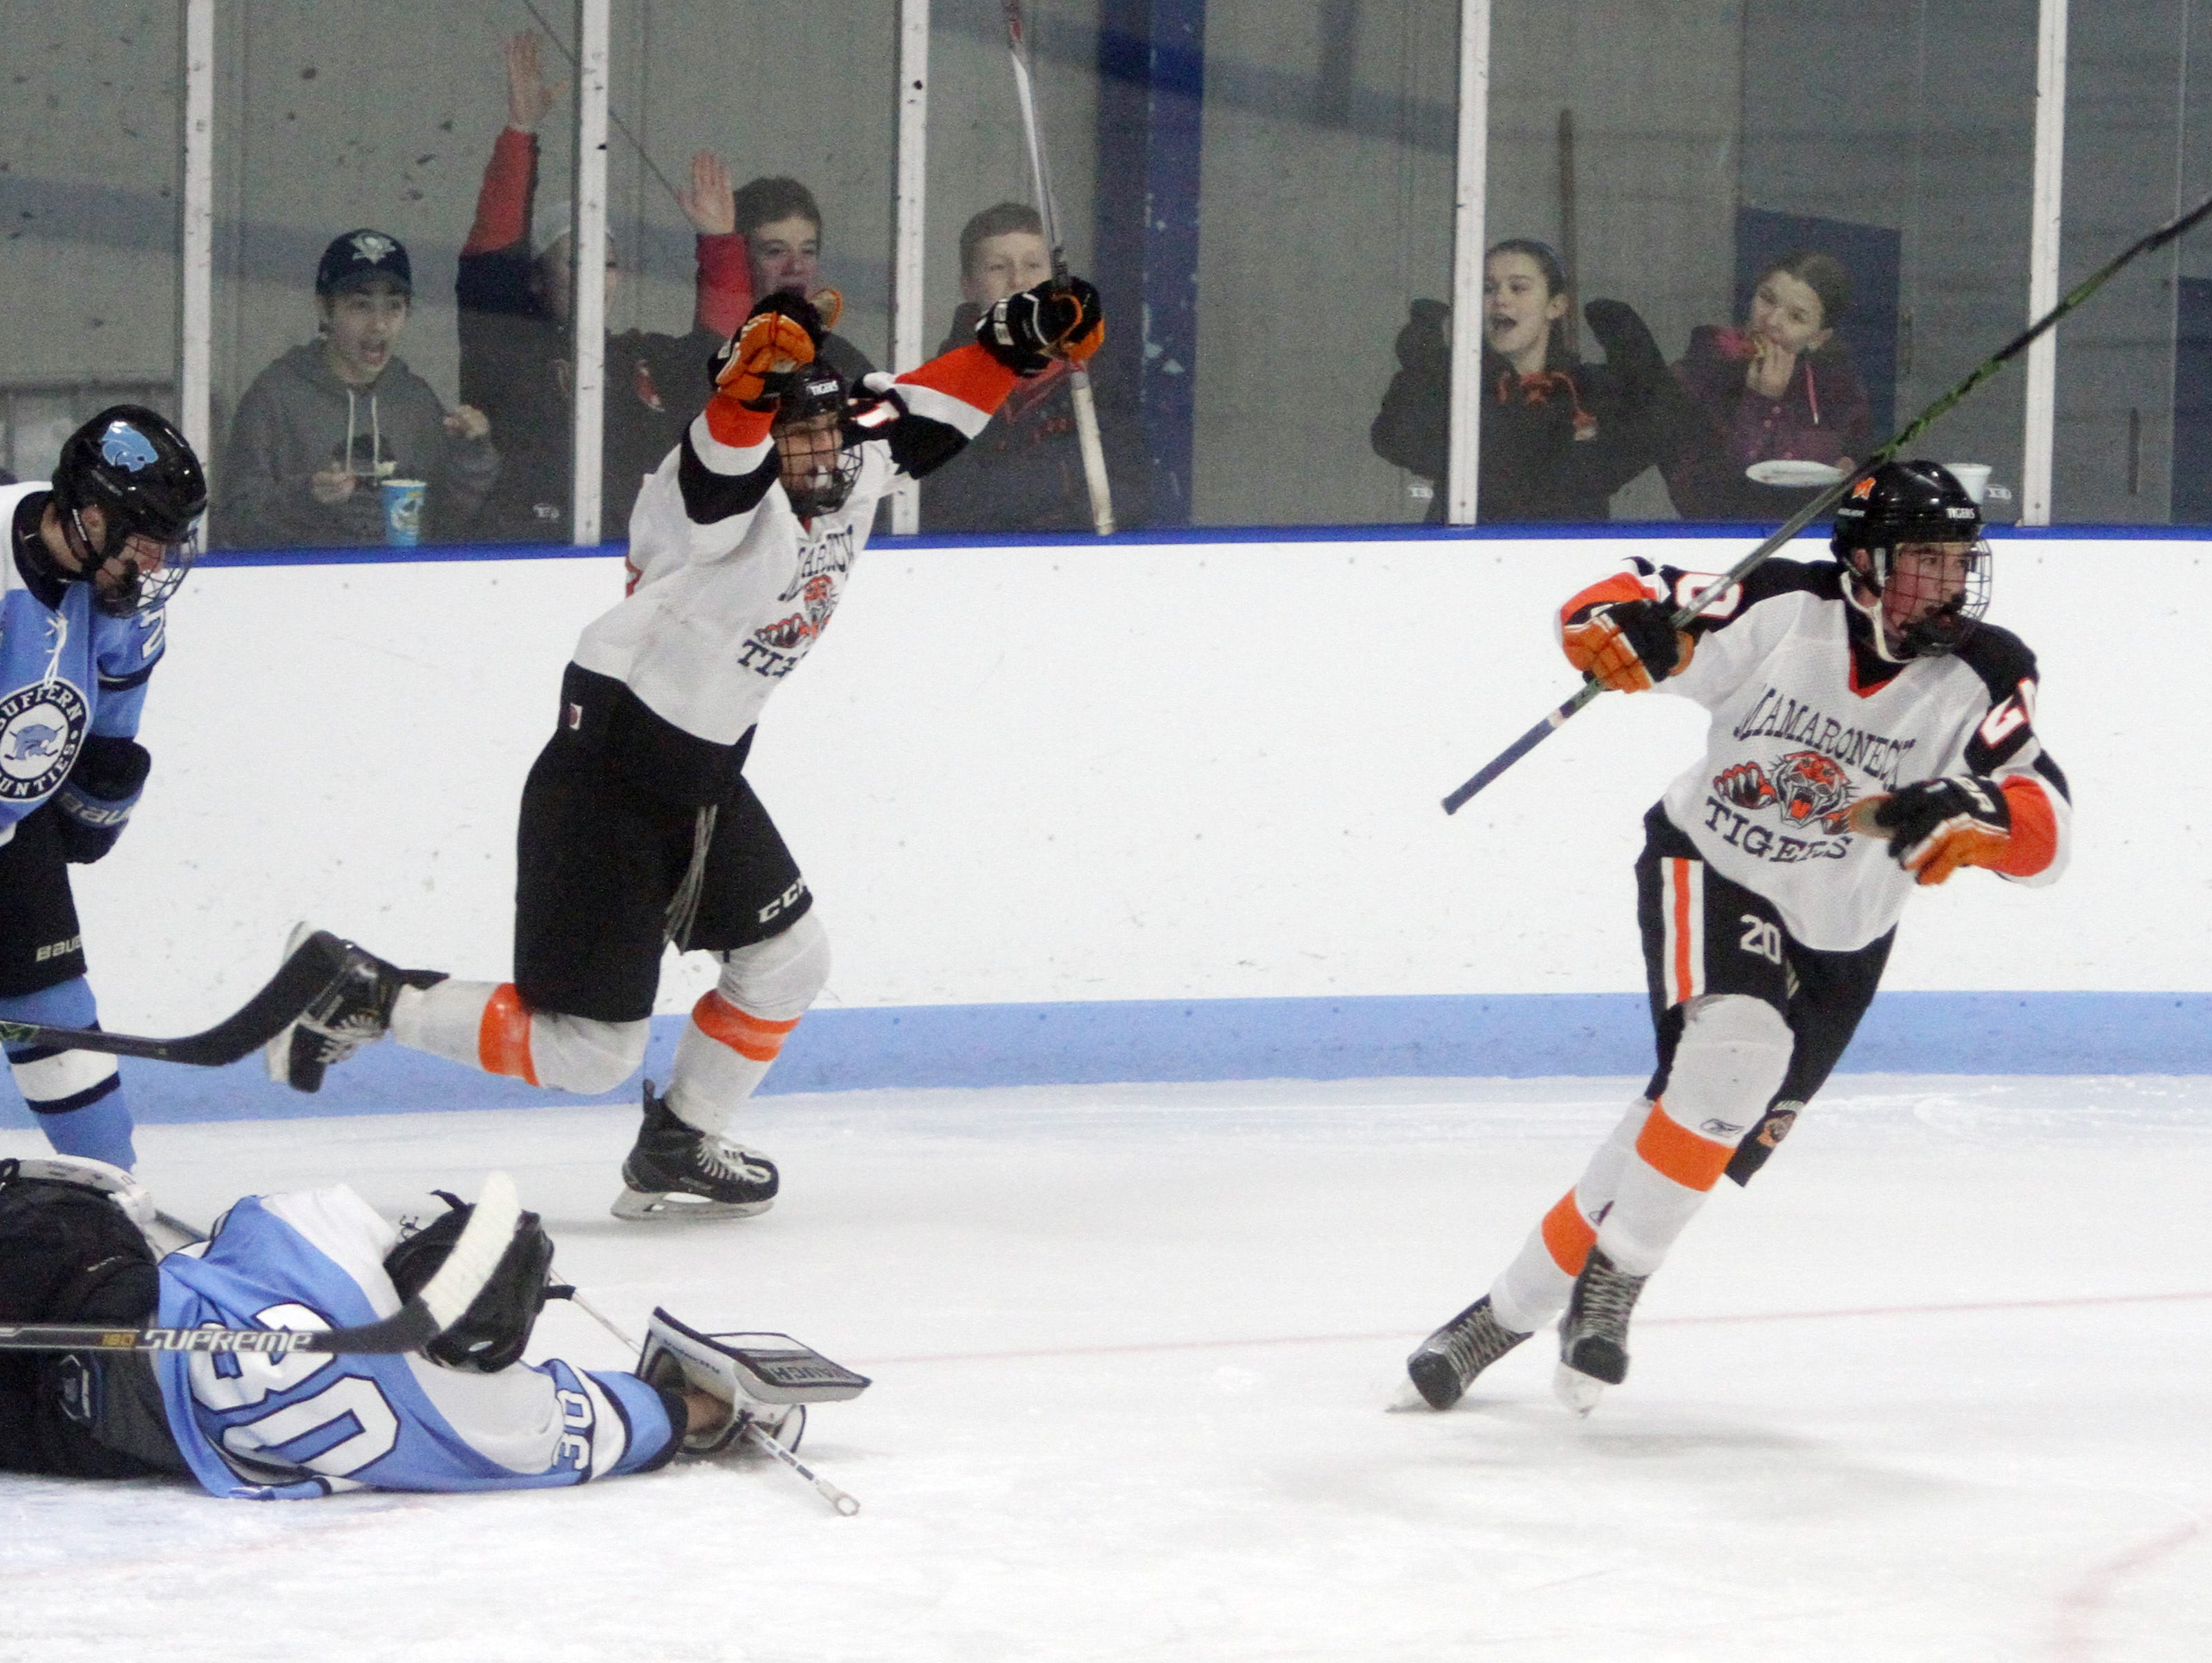 Mamaroneck's Will Payne, right, celebrates after scoring again during a varsity hockey game against Suffern at Hommocks Park Ice Rink in Larchmont Jan. 29, 2016. Mamaroneck defeated Suffern 4-2.